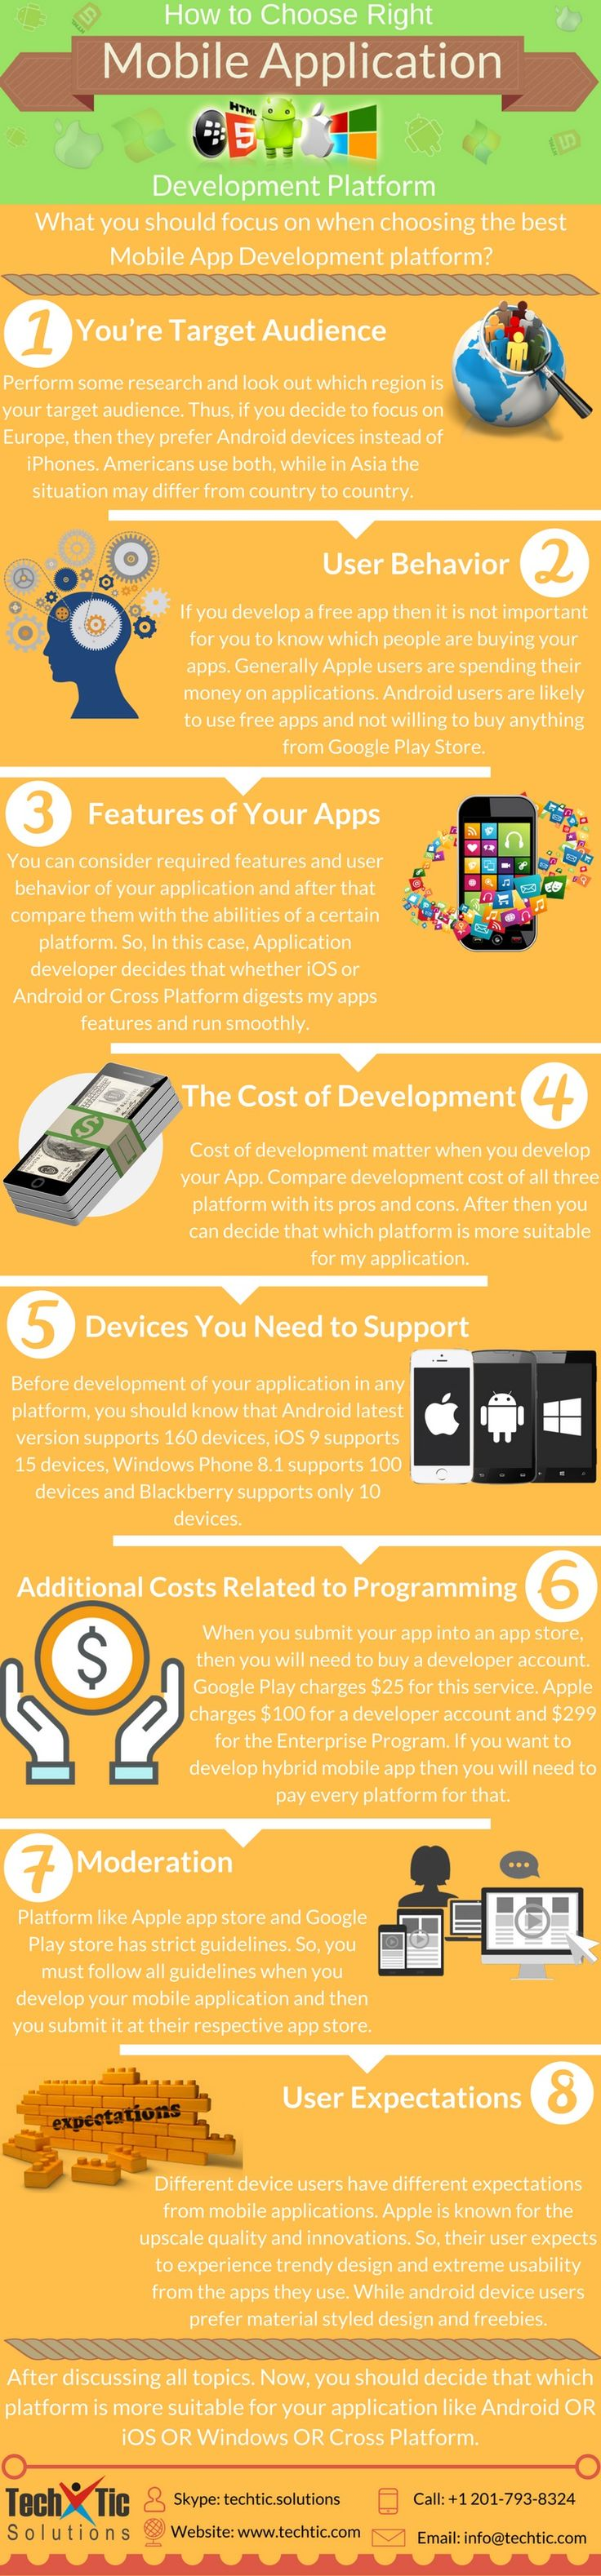 How To Choose Right Mobile Application Development Platform? In Graphics, We Provide Detailedrmation